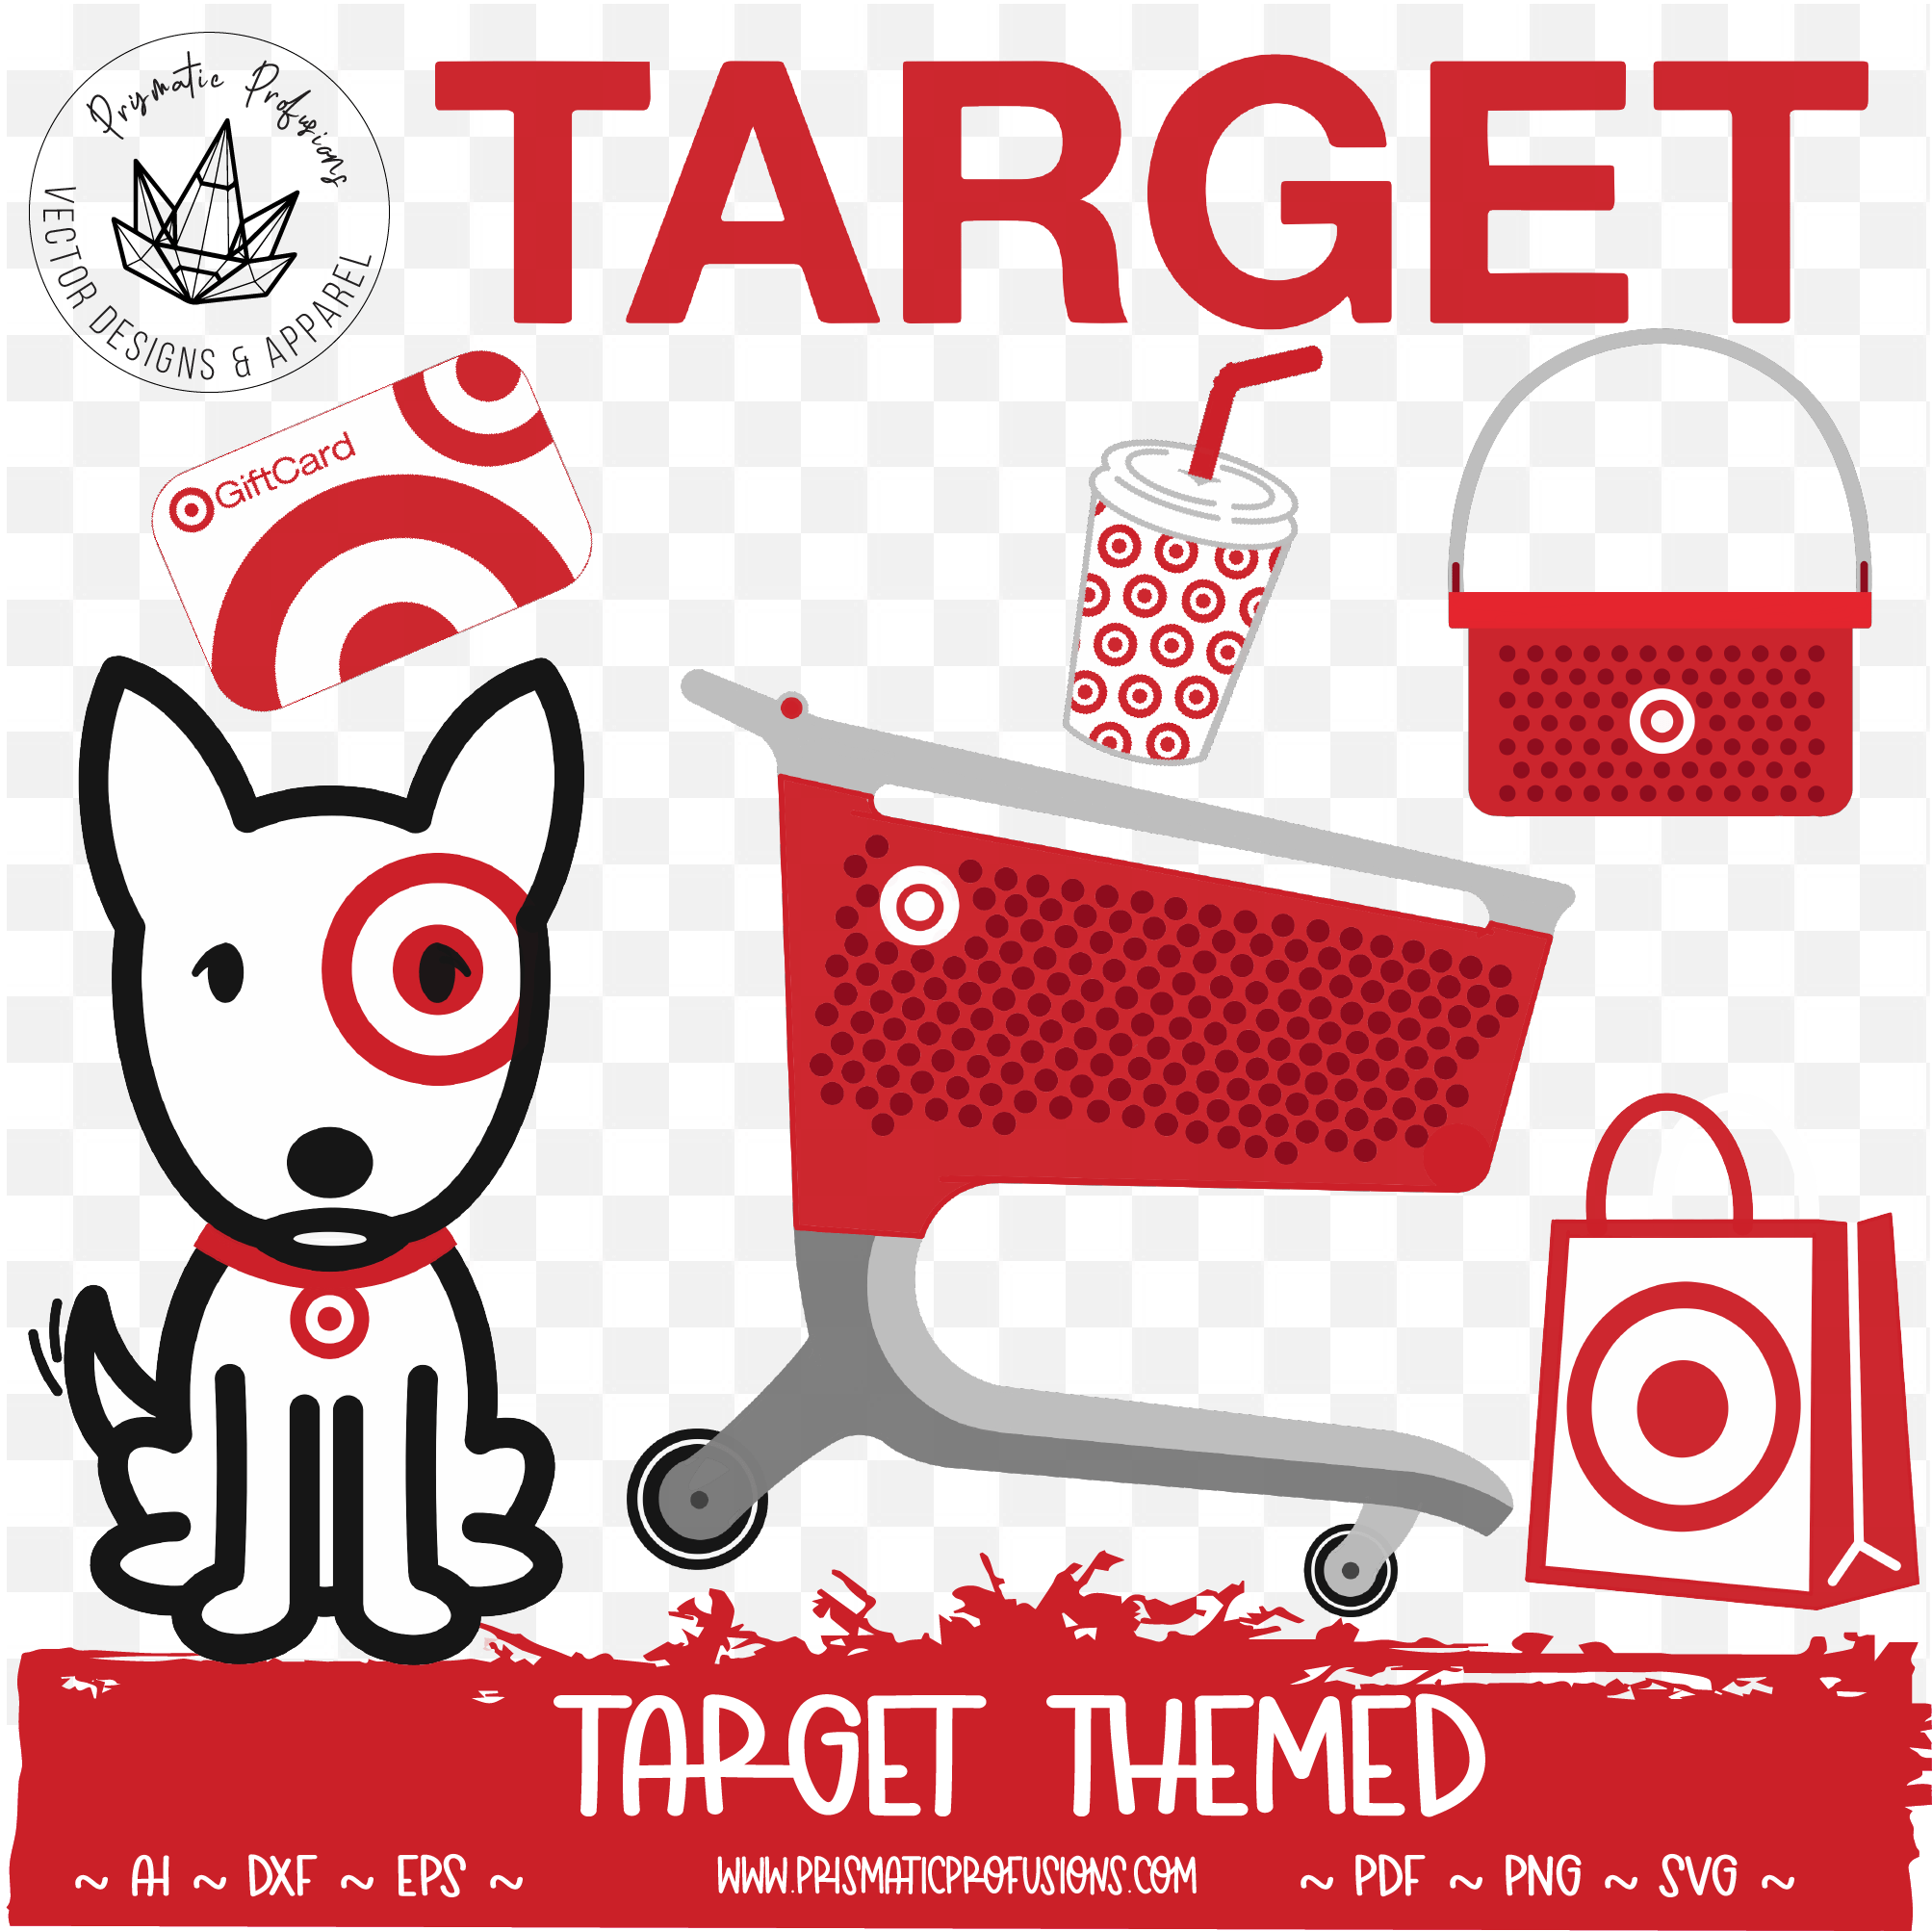 Target Store Target Store Svg Target Store Clipart Cricut Projects Vinyl Card Making Stickers Target Store